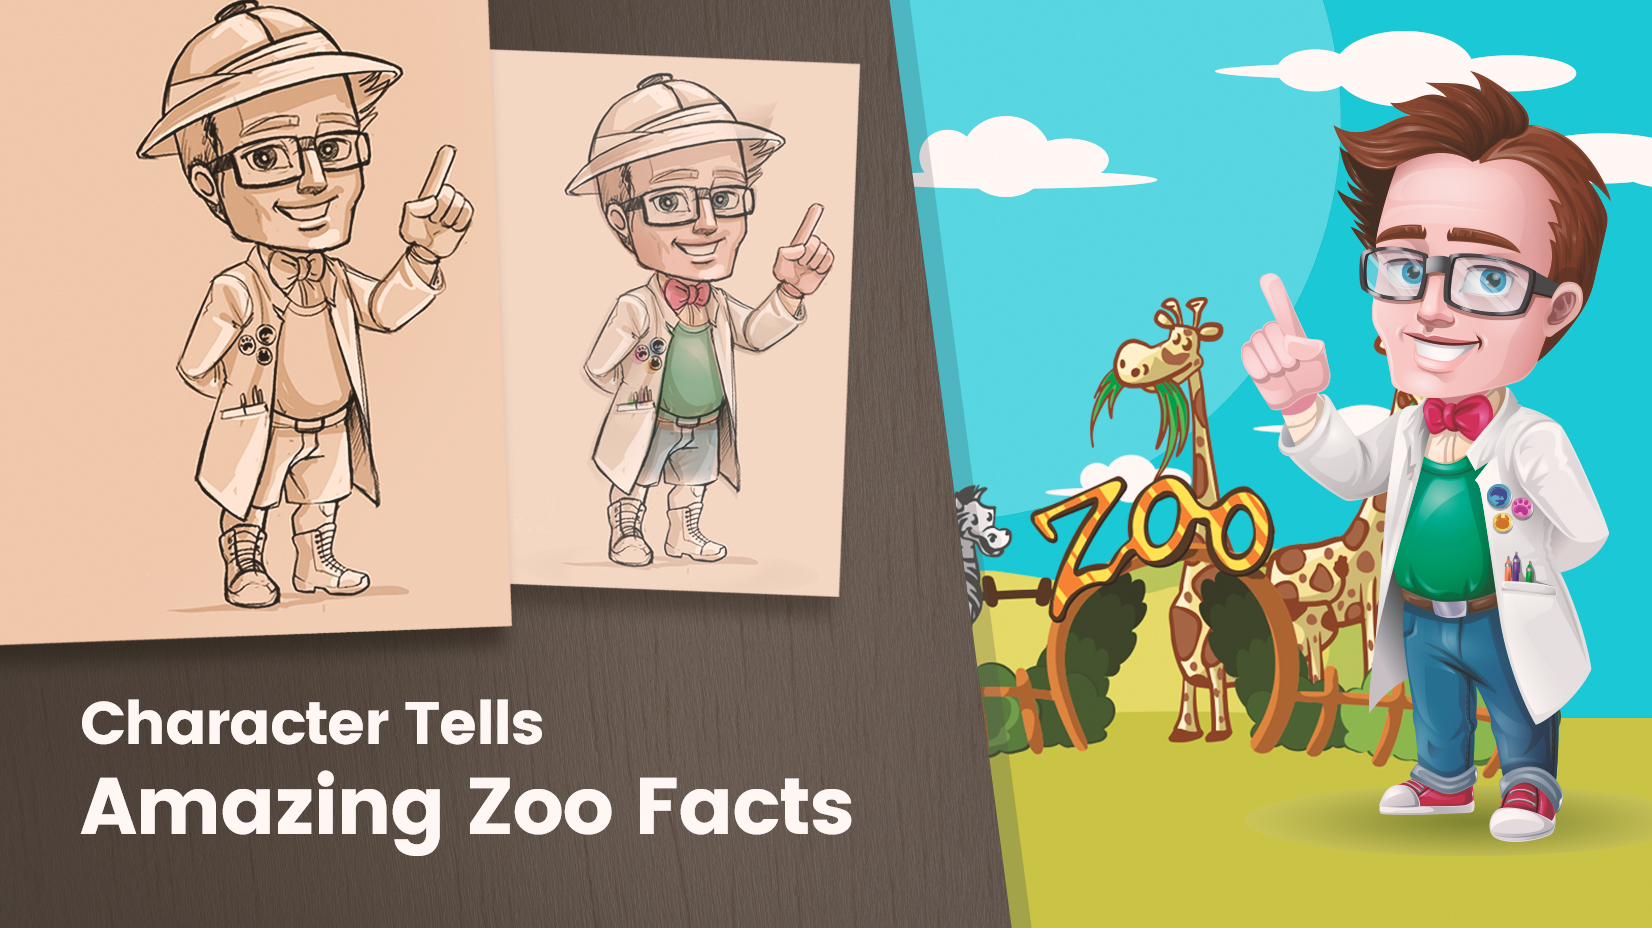 GraphicMama's work - Case study Zoo facts